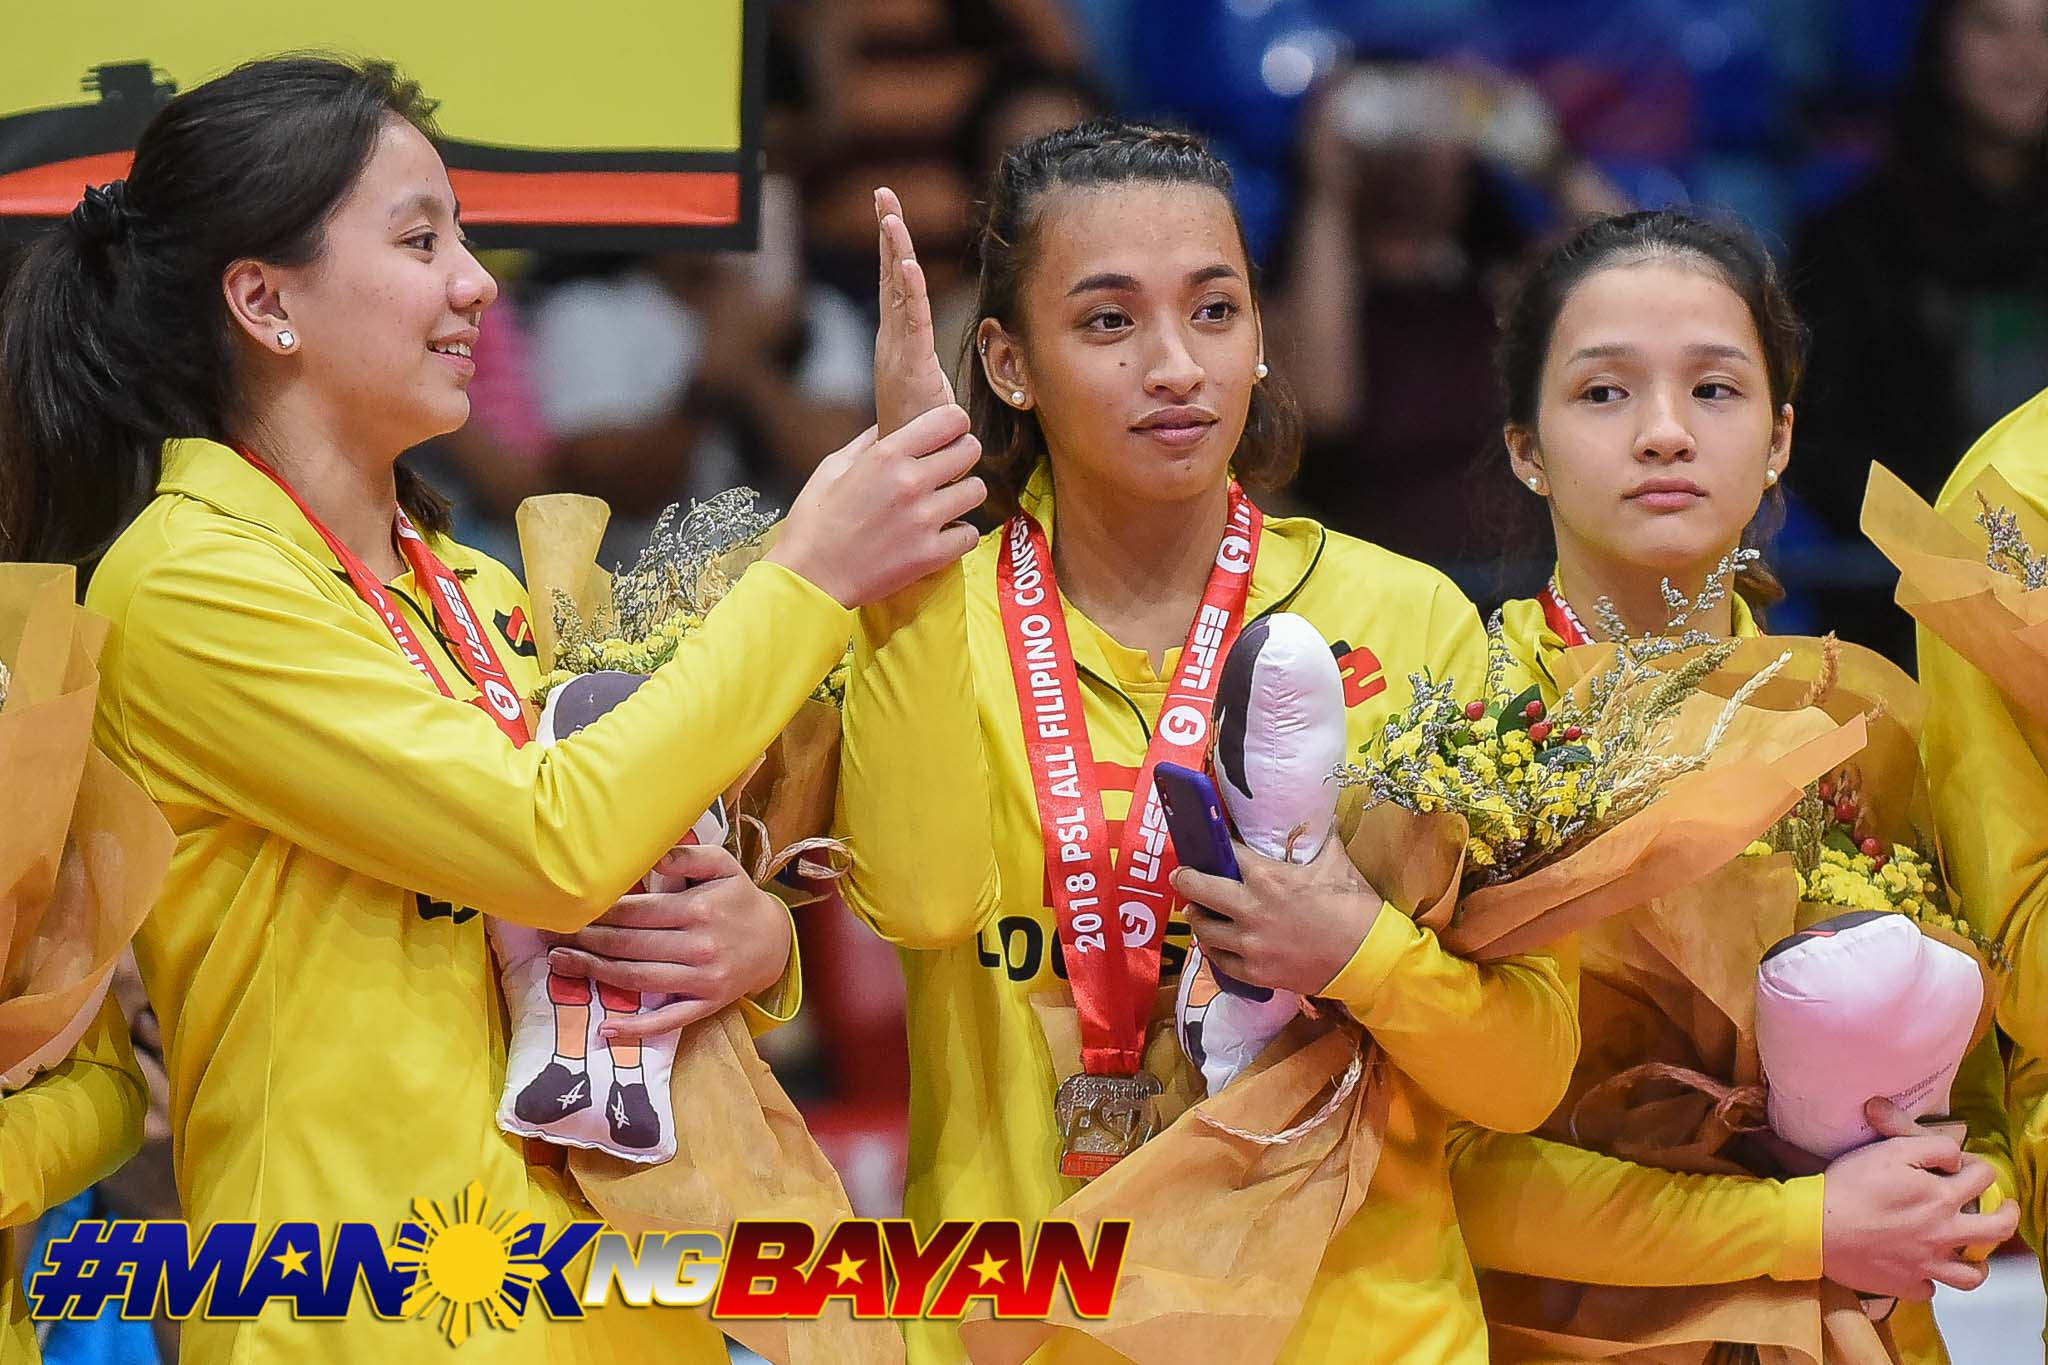 Tiebreaker Times Mich Morente to play for F2 Logistics in PSL, to miss La Salle's UAAP campaign News PSL Volleyball  UAAP Season 81 Women's Volleyball UAAP Season 81 Michelle Morente F2 Logistics Cargo Movers DLSU Women's Volleyball 2019 PSL Season 2019 PSL Grand Prix